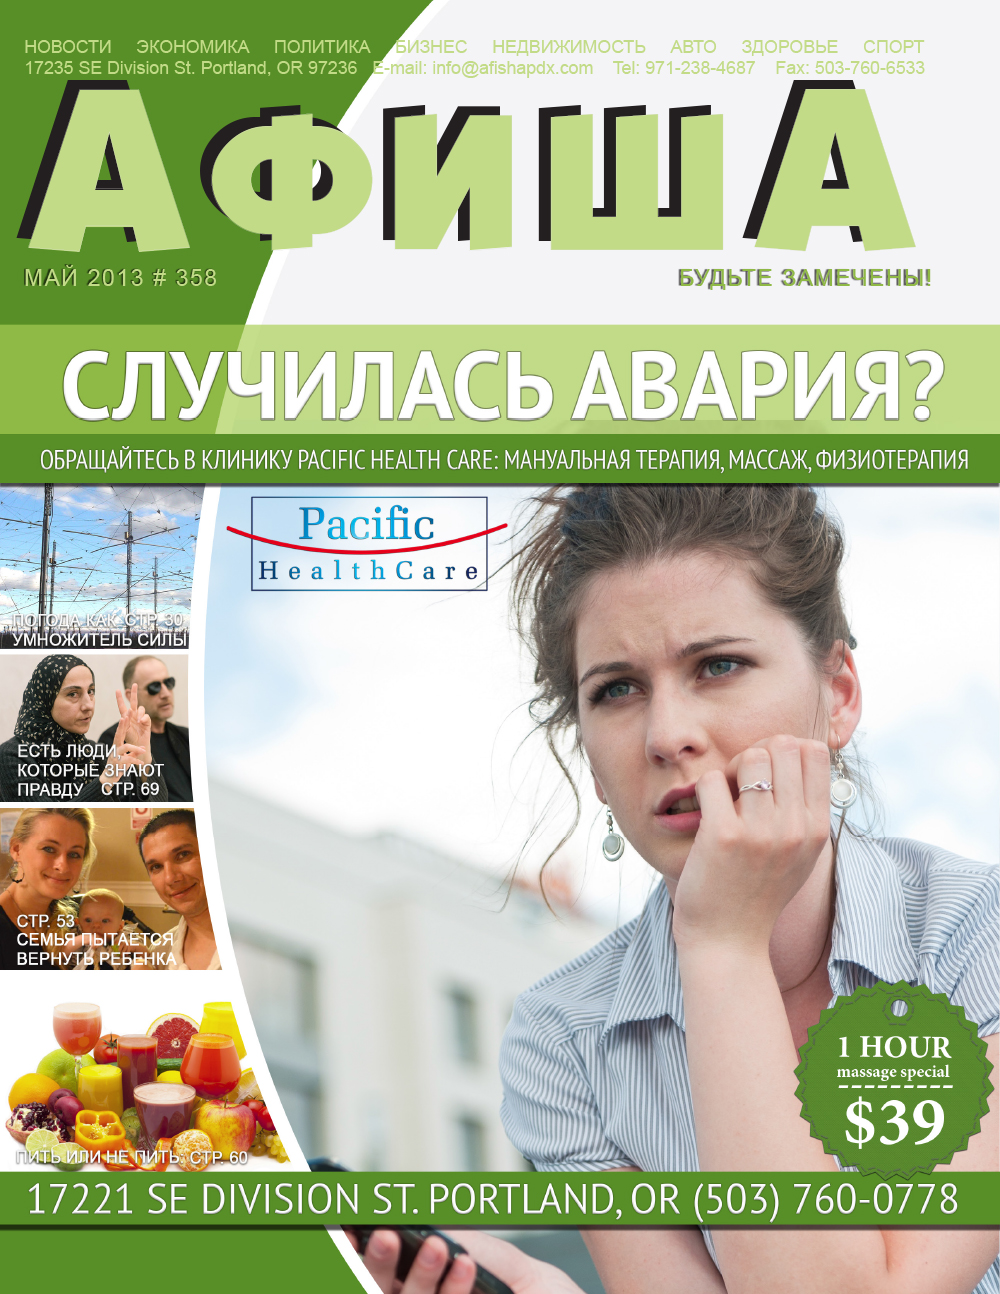 Afisha Magzine, classifieds in portland, реклама, портленд, орегон, ванкувер